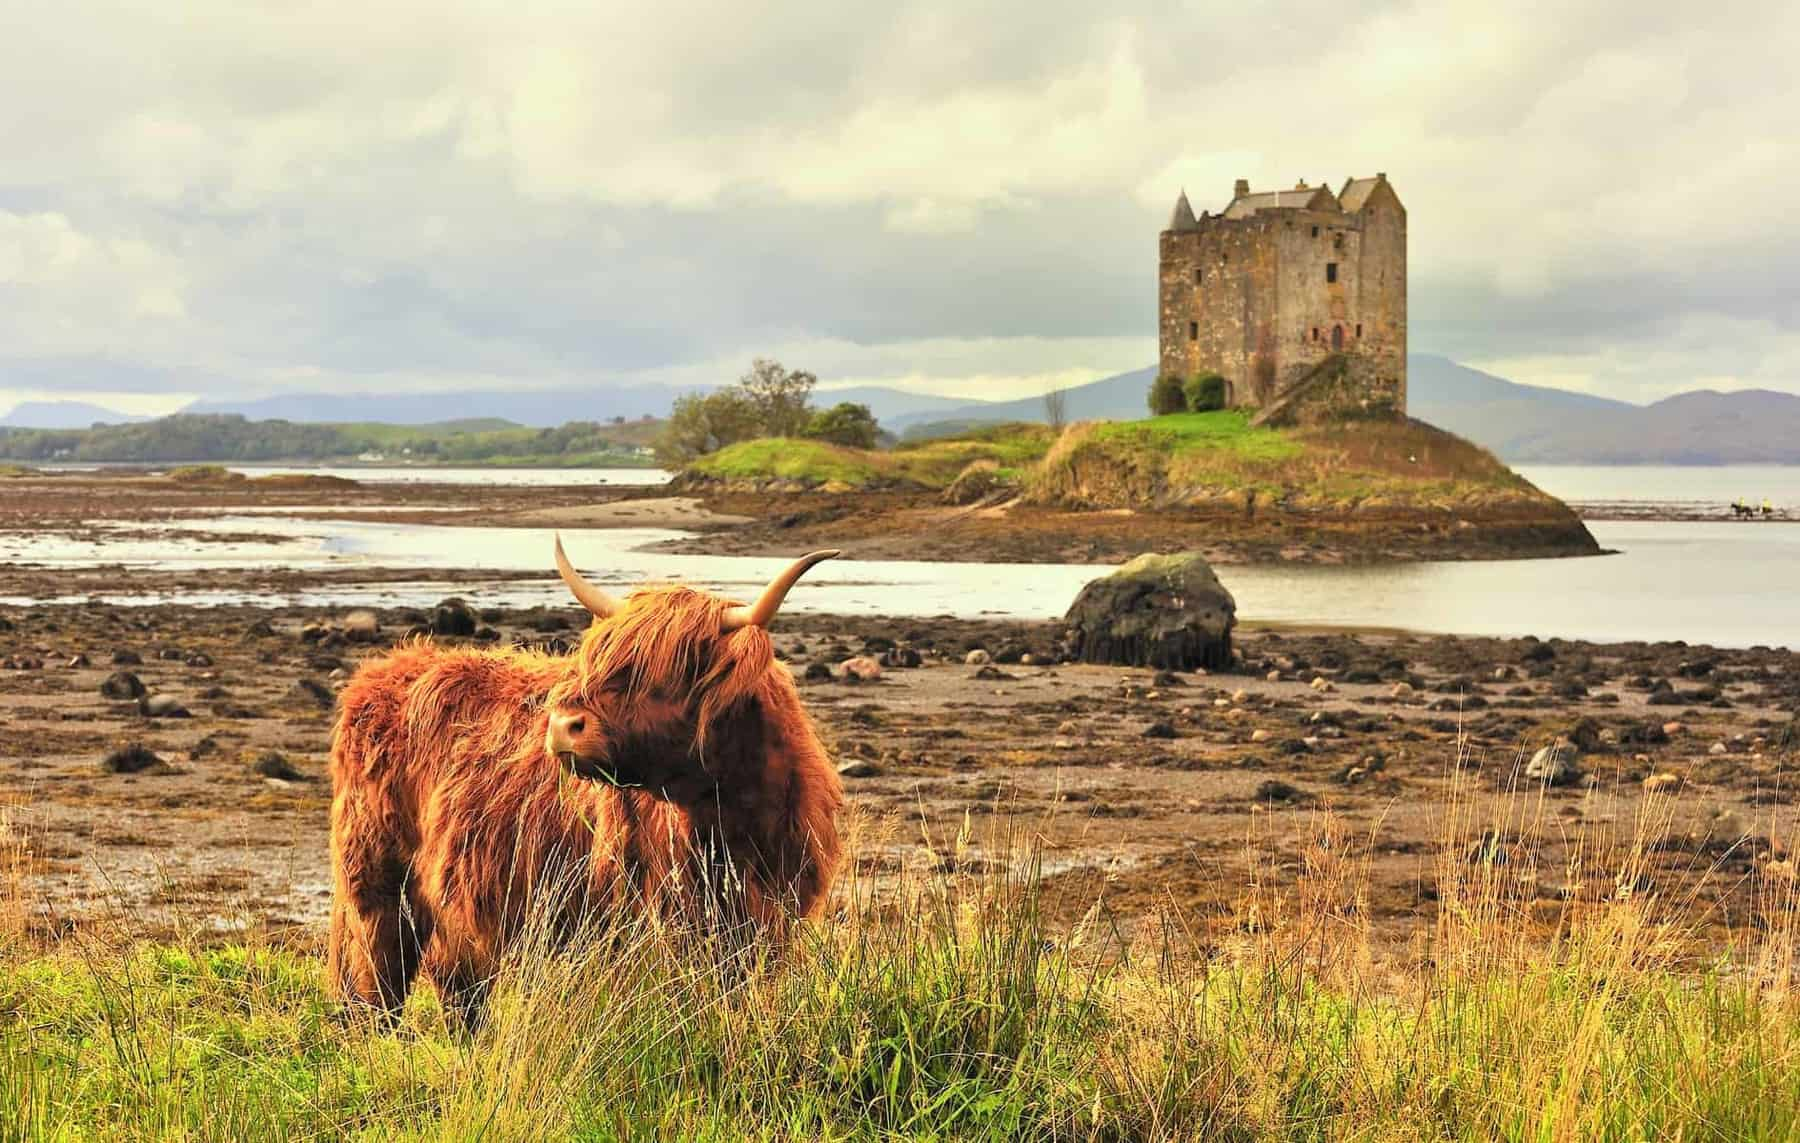 A lone highland cow grazes on grass, with castle Stalker in the background. A classic Scottish image.